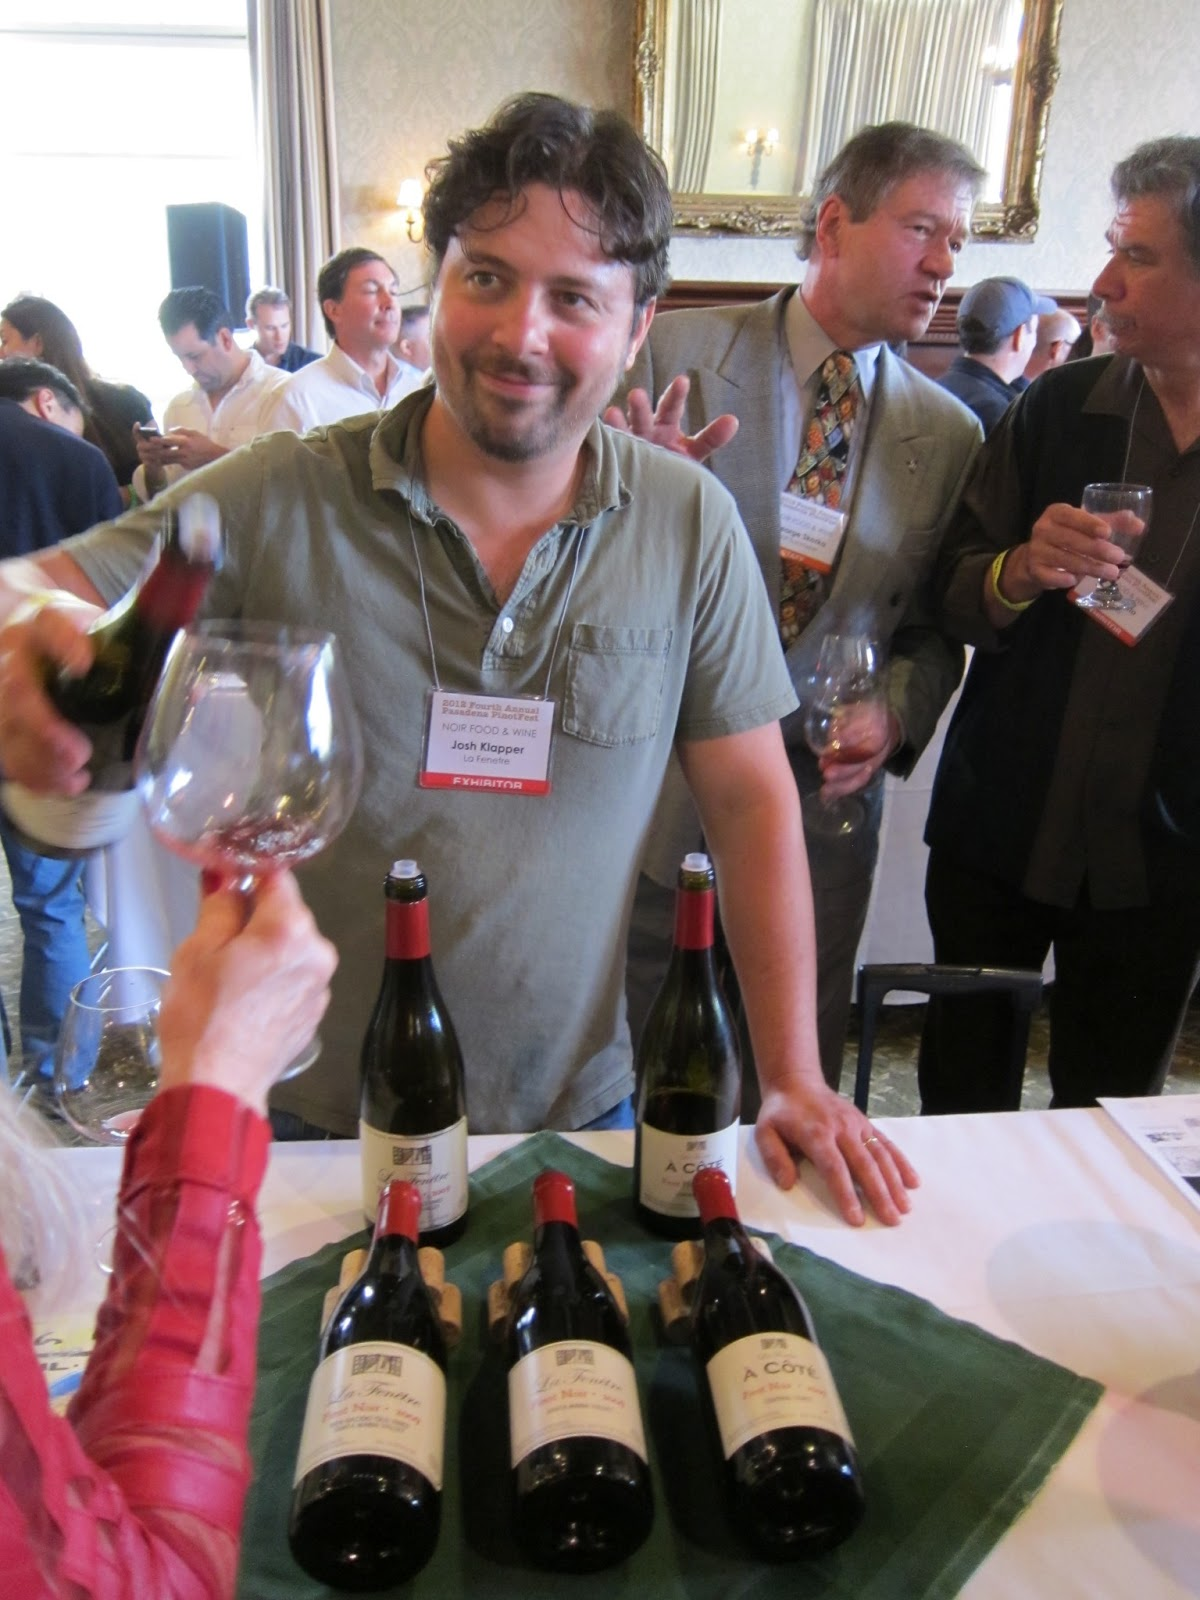 Gourmet pigs pasadena pinotfest returns feb 9 for La fenetre wine